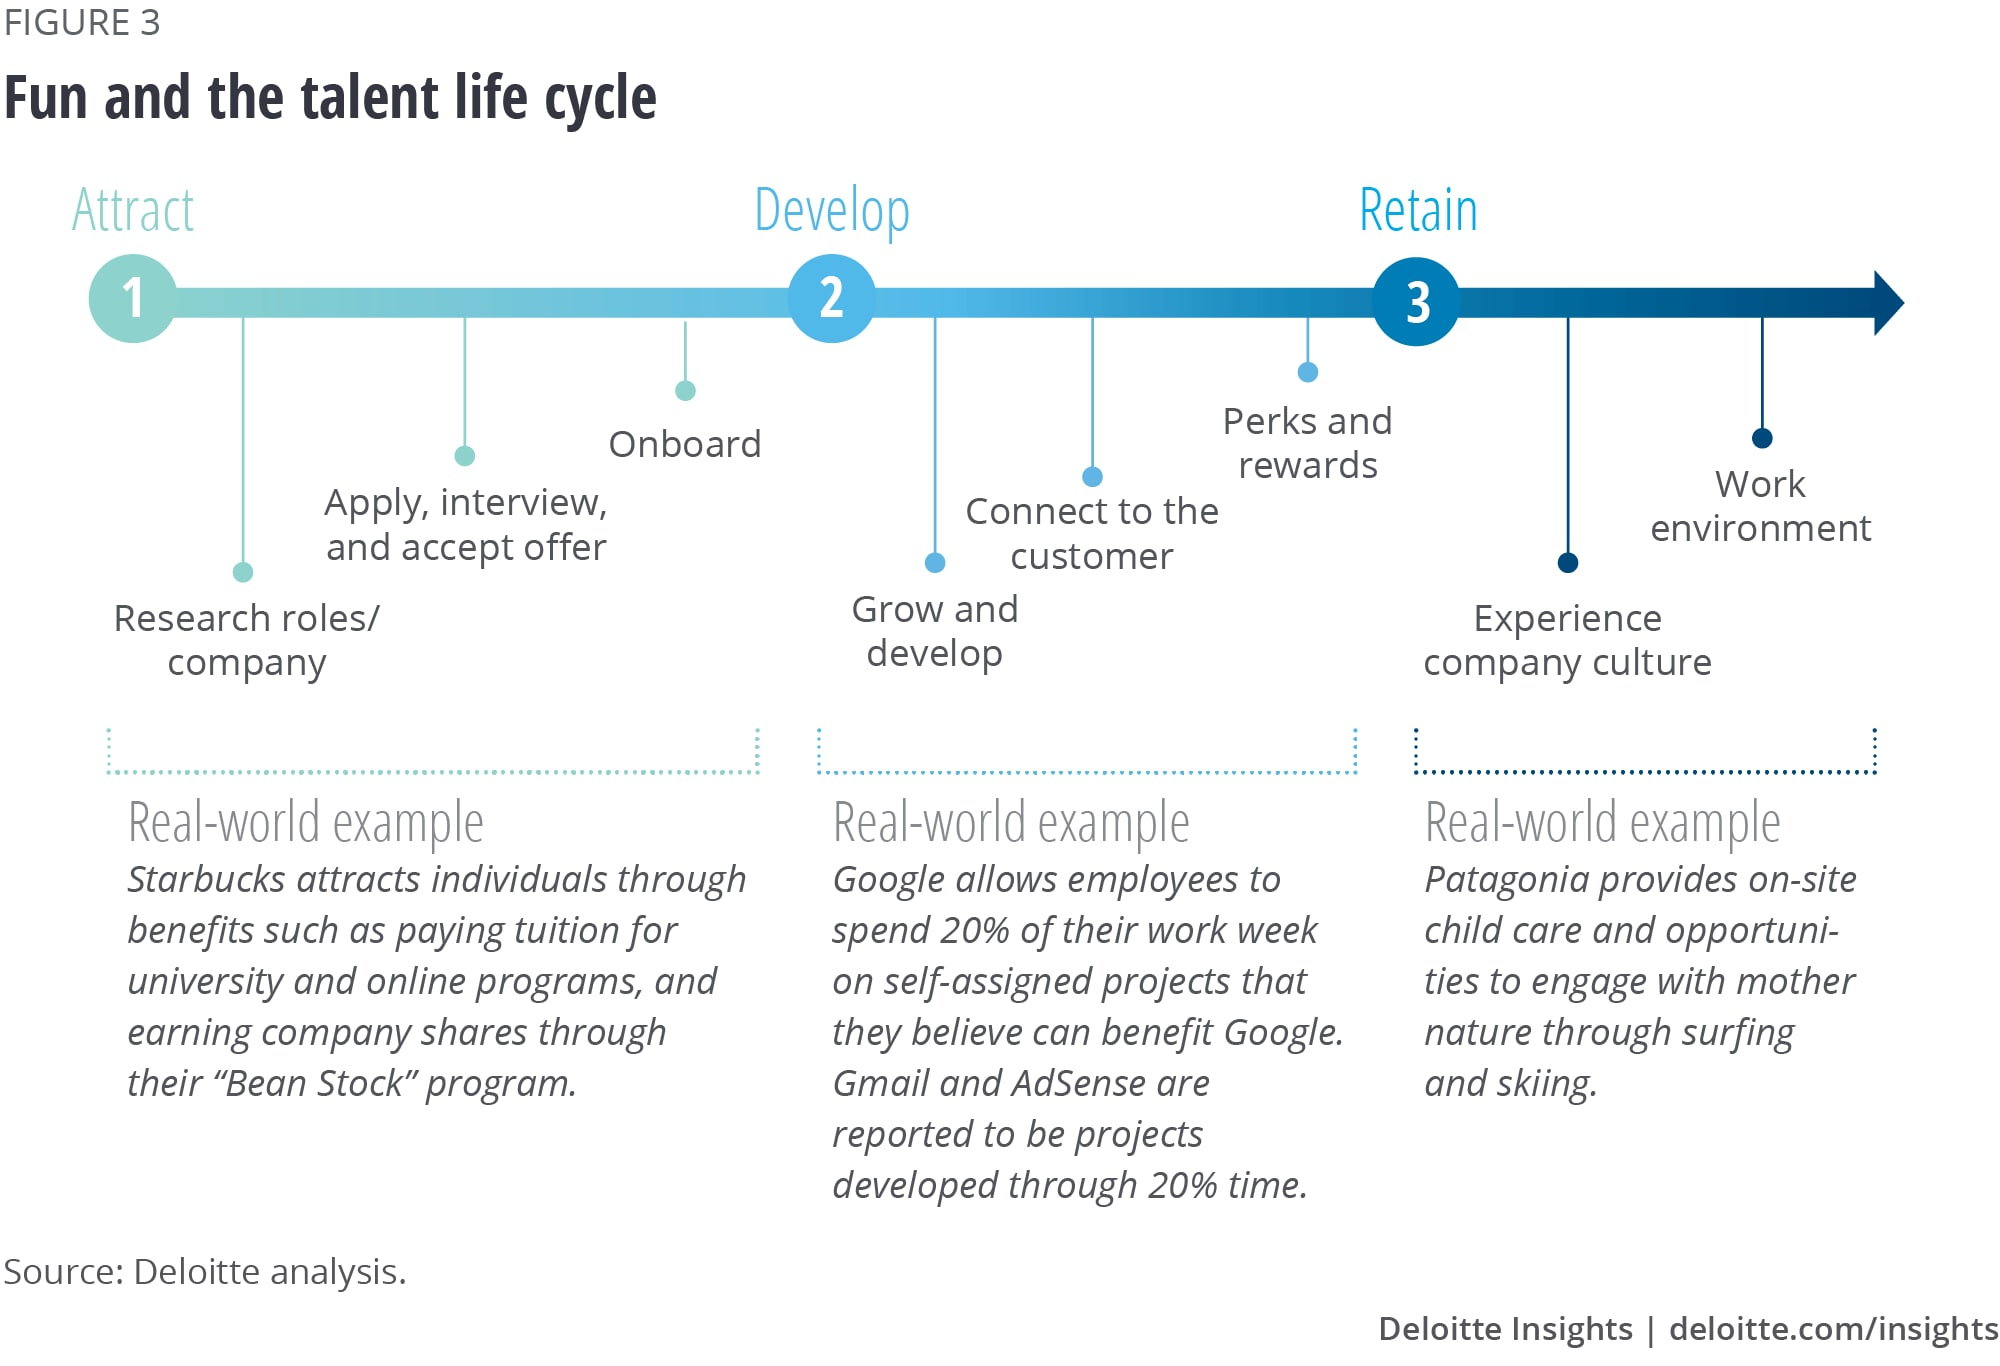 Fun and the talent life cycle